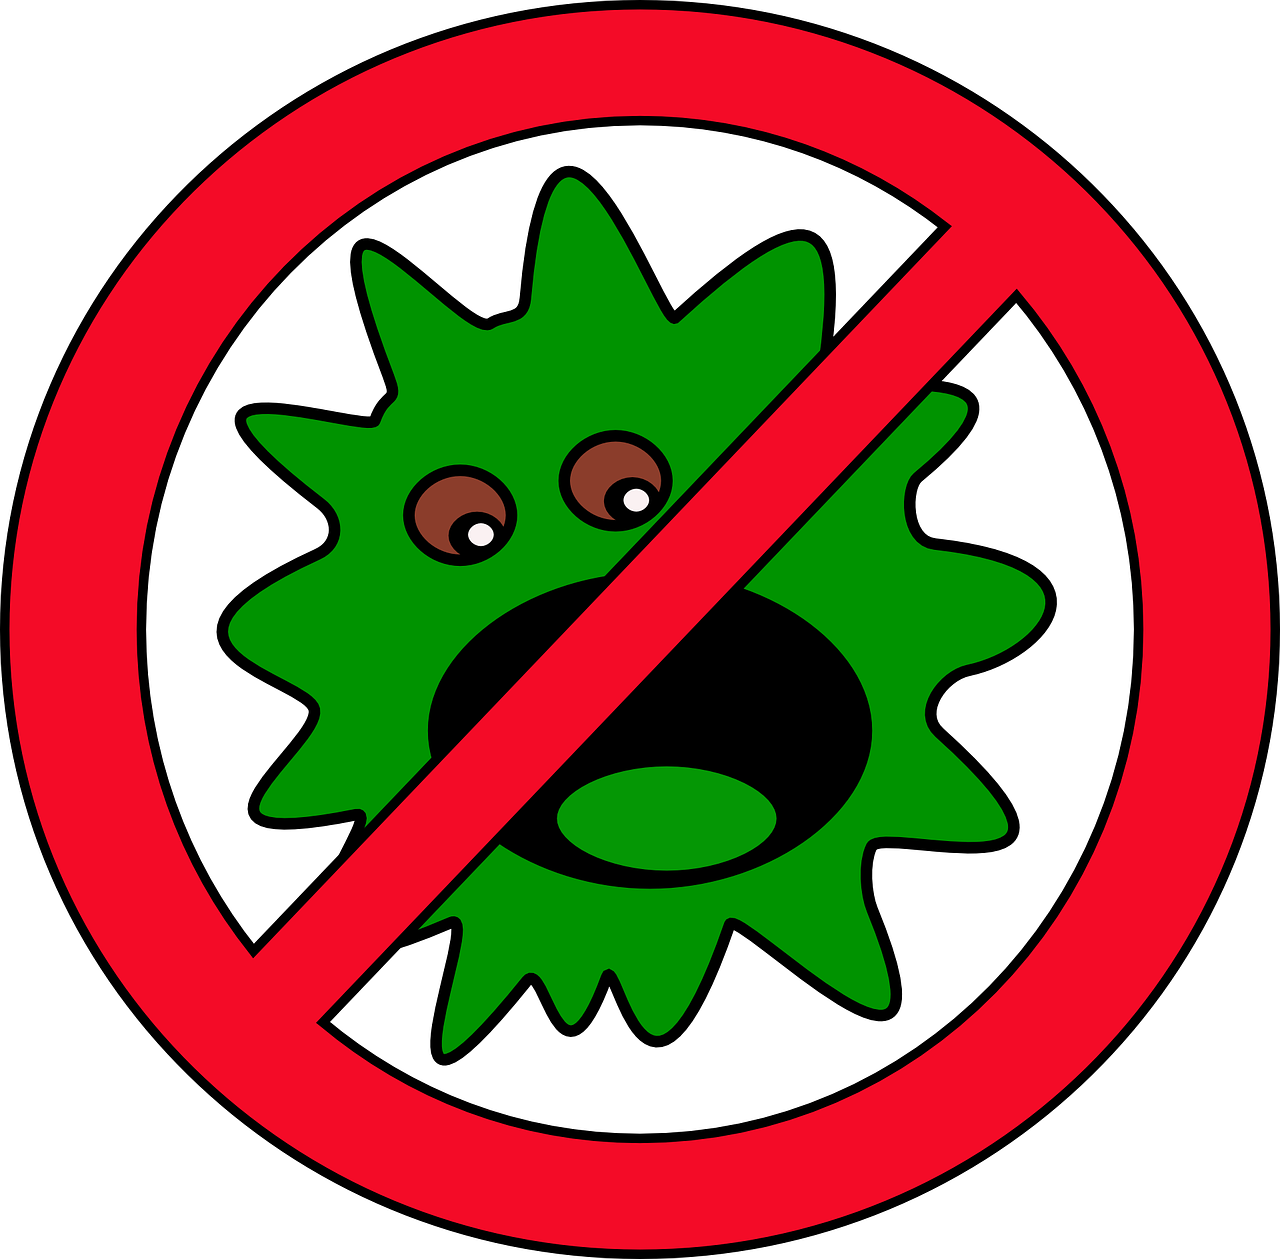 Infectious diseases archives air. Germ clipart clipart royalty free stock